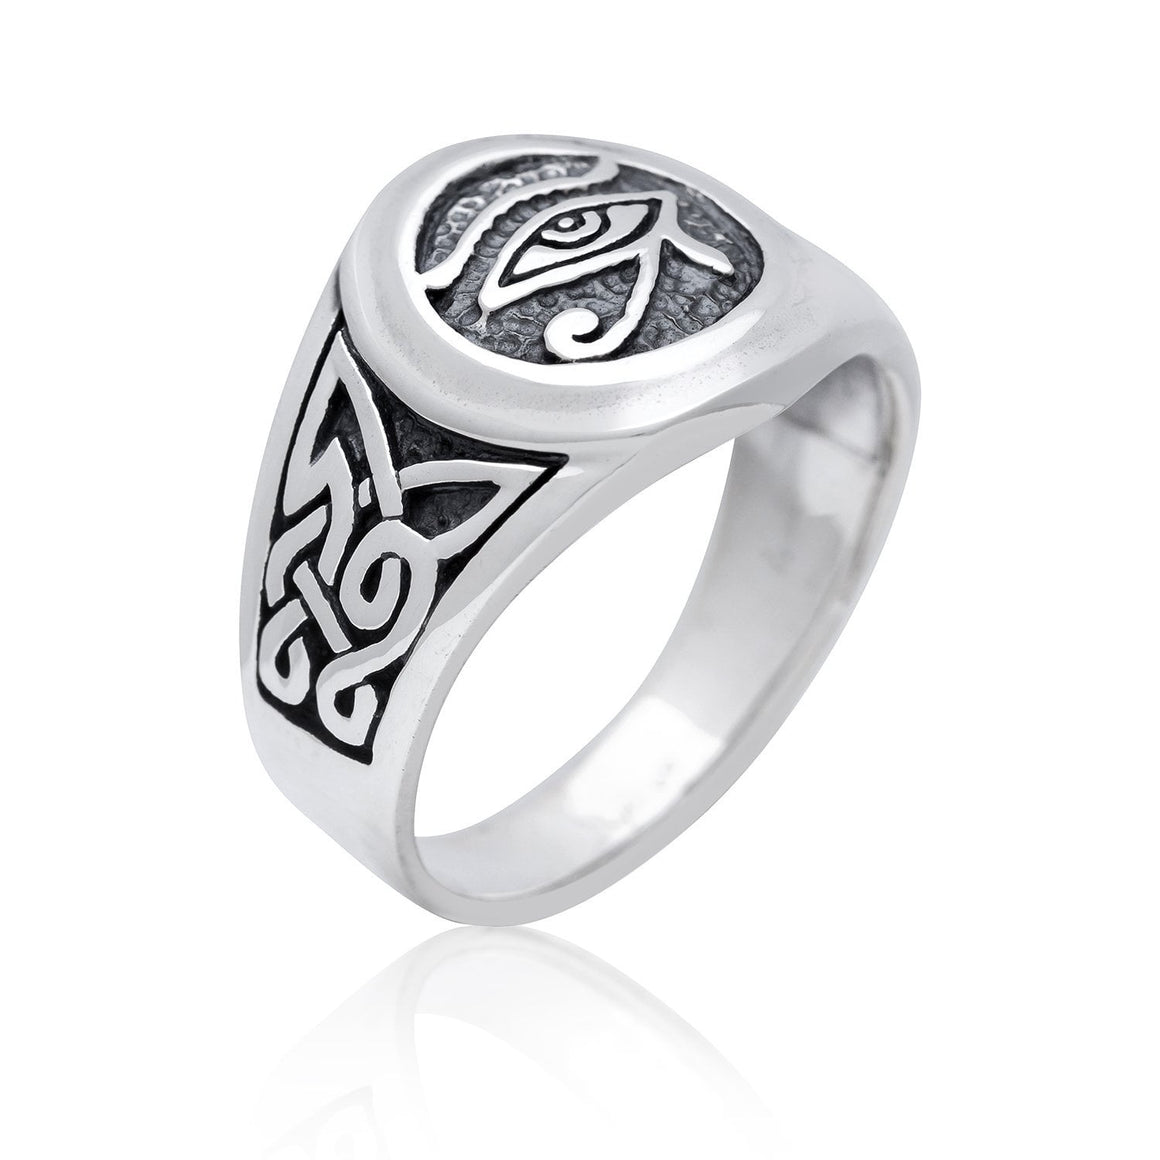 925 Sterling Silver Egypt Egyptian Eye of God Horus Ra Udjat Knotwork Ring - SilverMania925